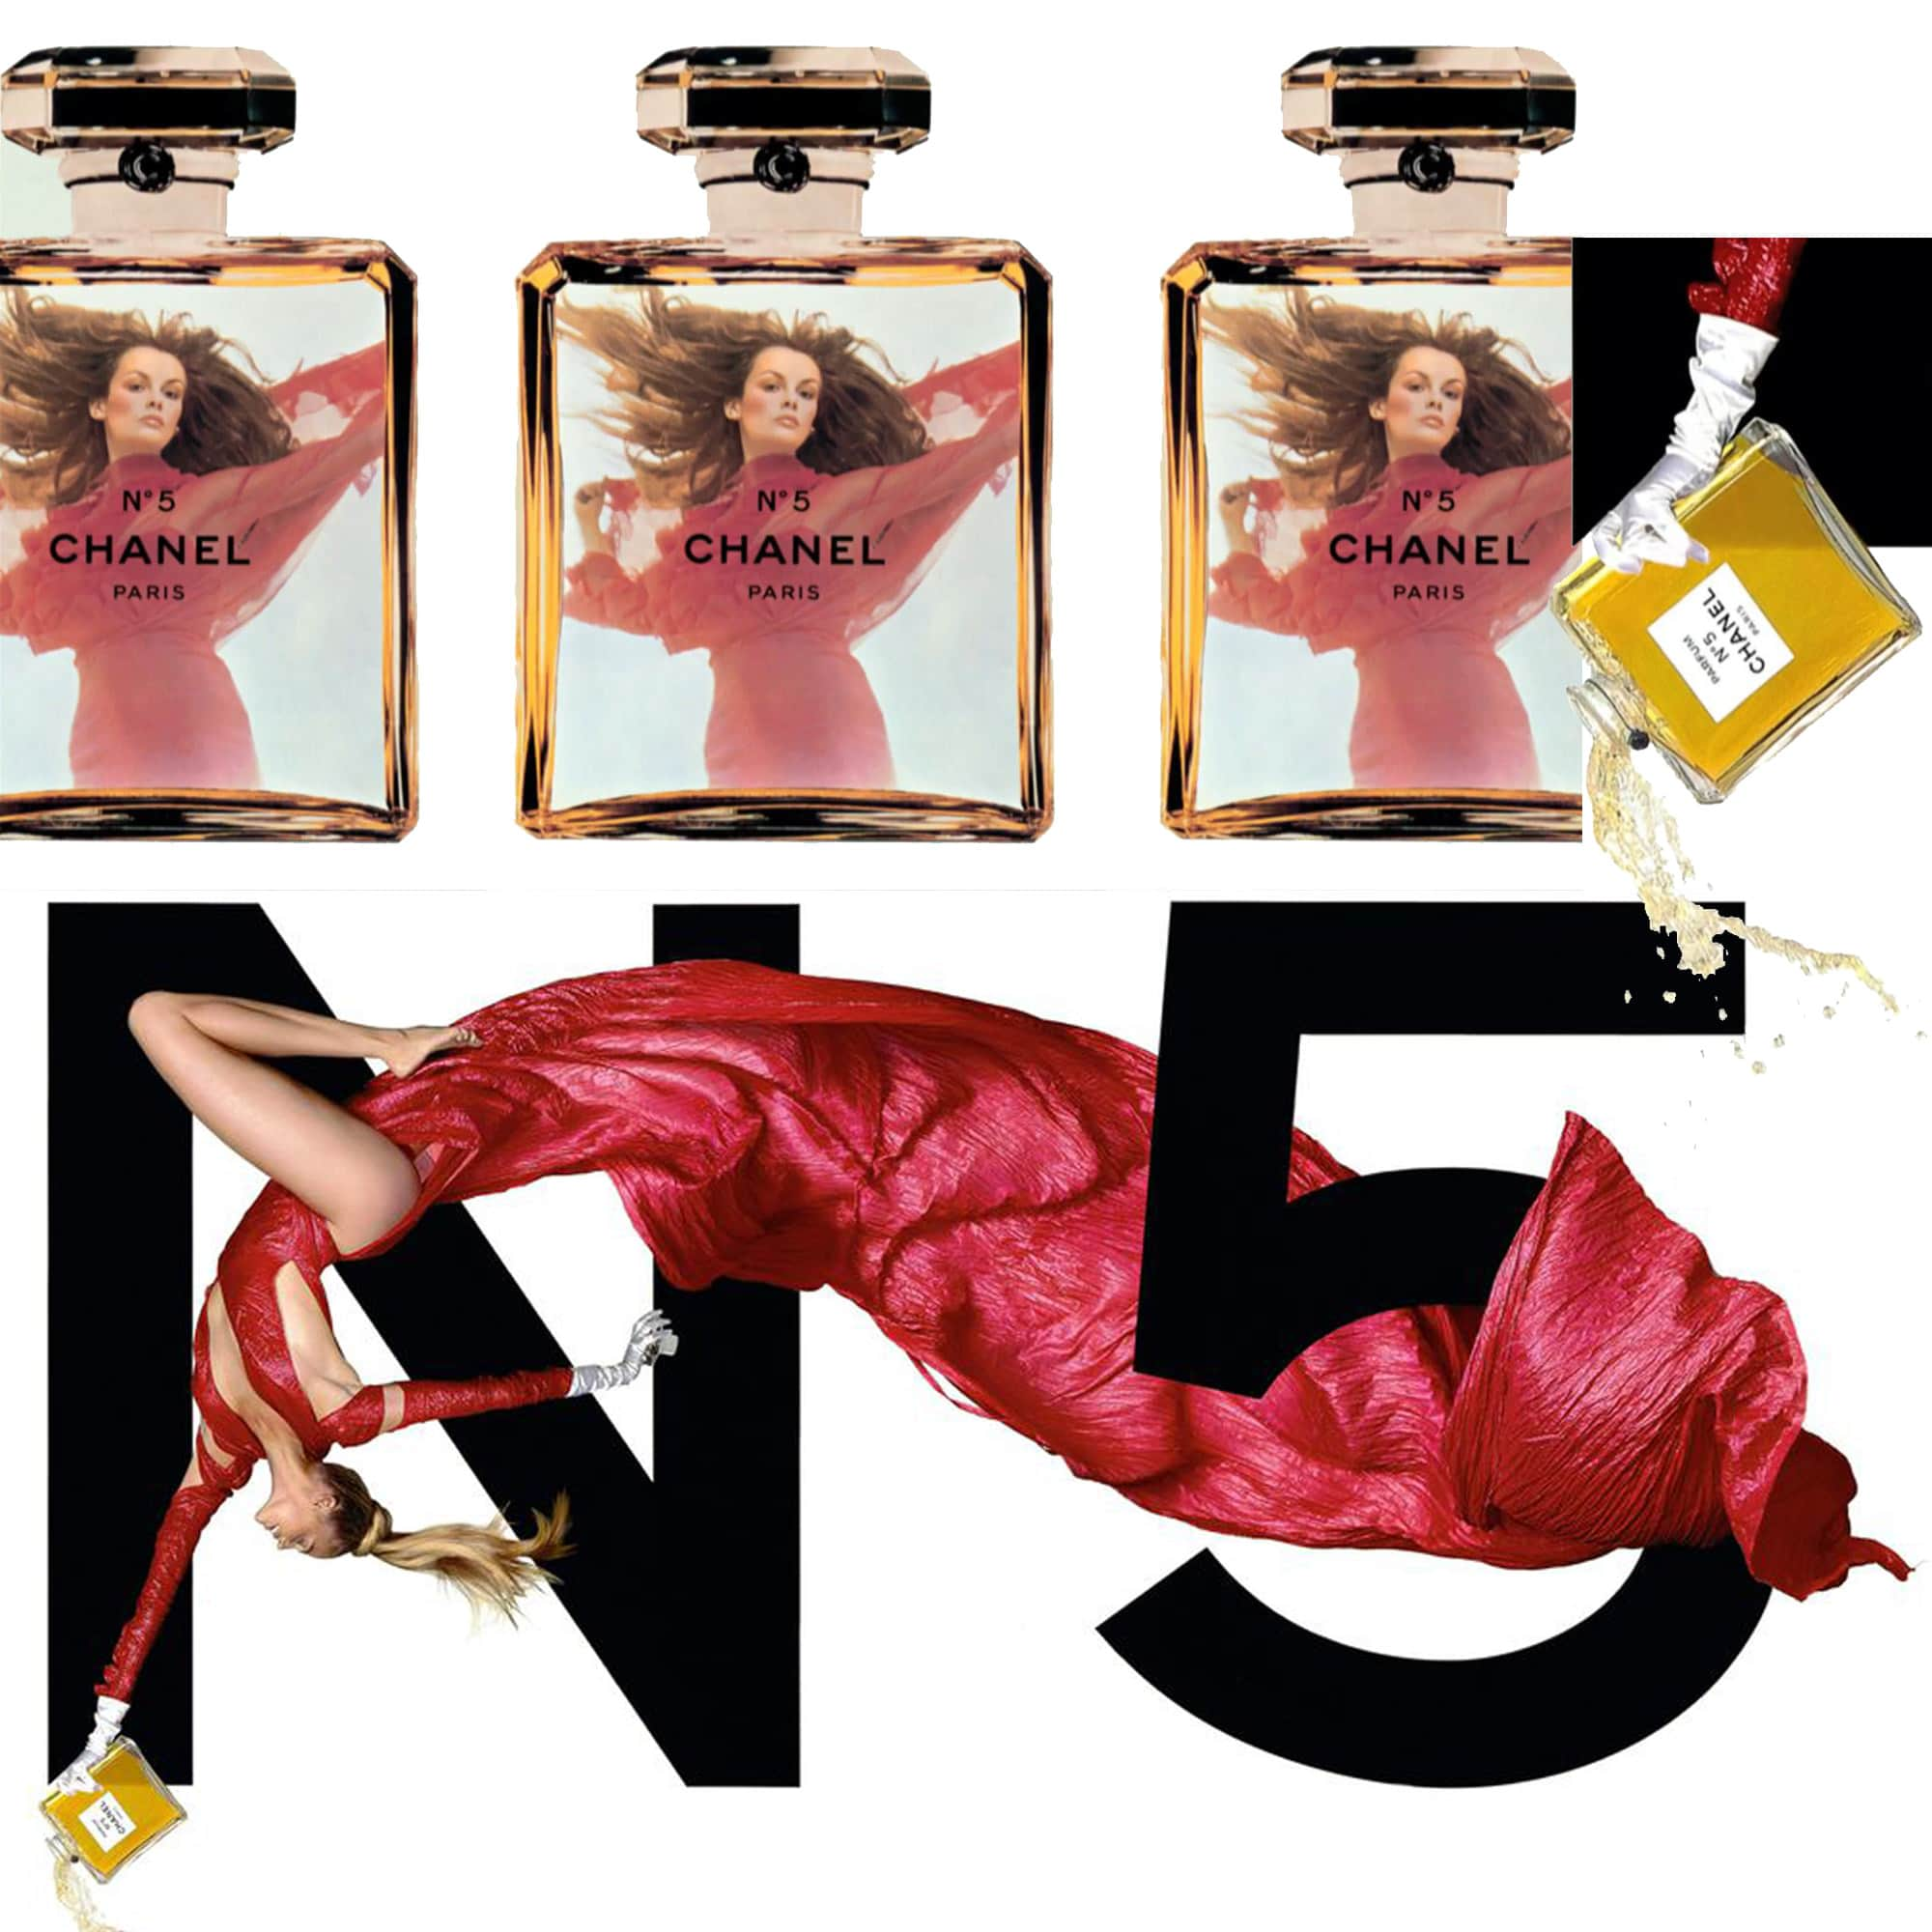 CHANEL 5 perfume - Tresors INPI - Jean-Paul Goude for CHANEL by RUNWAY MAGAZINE